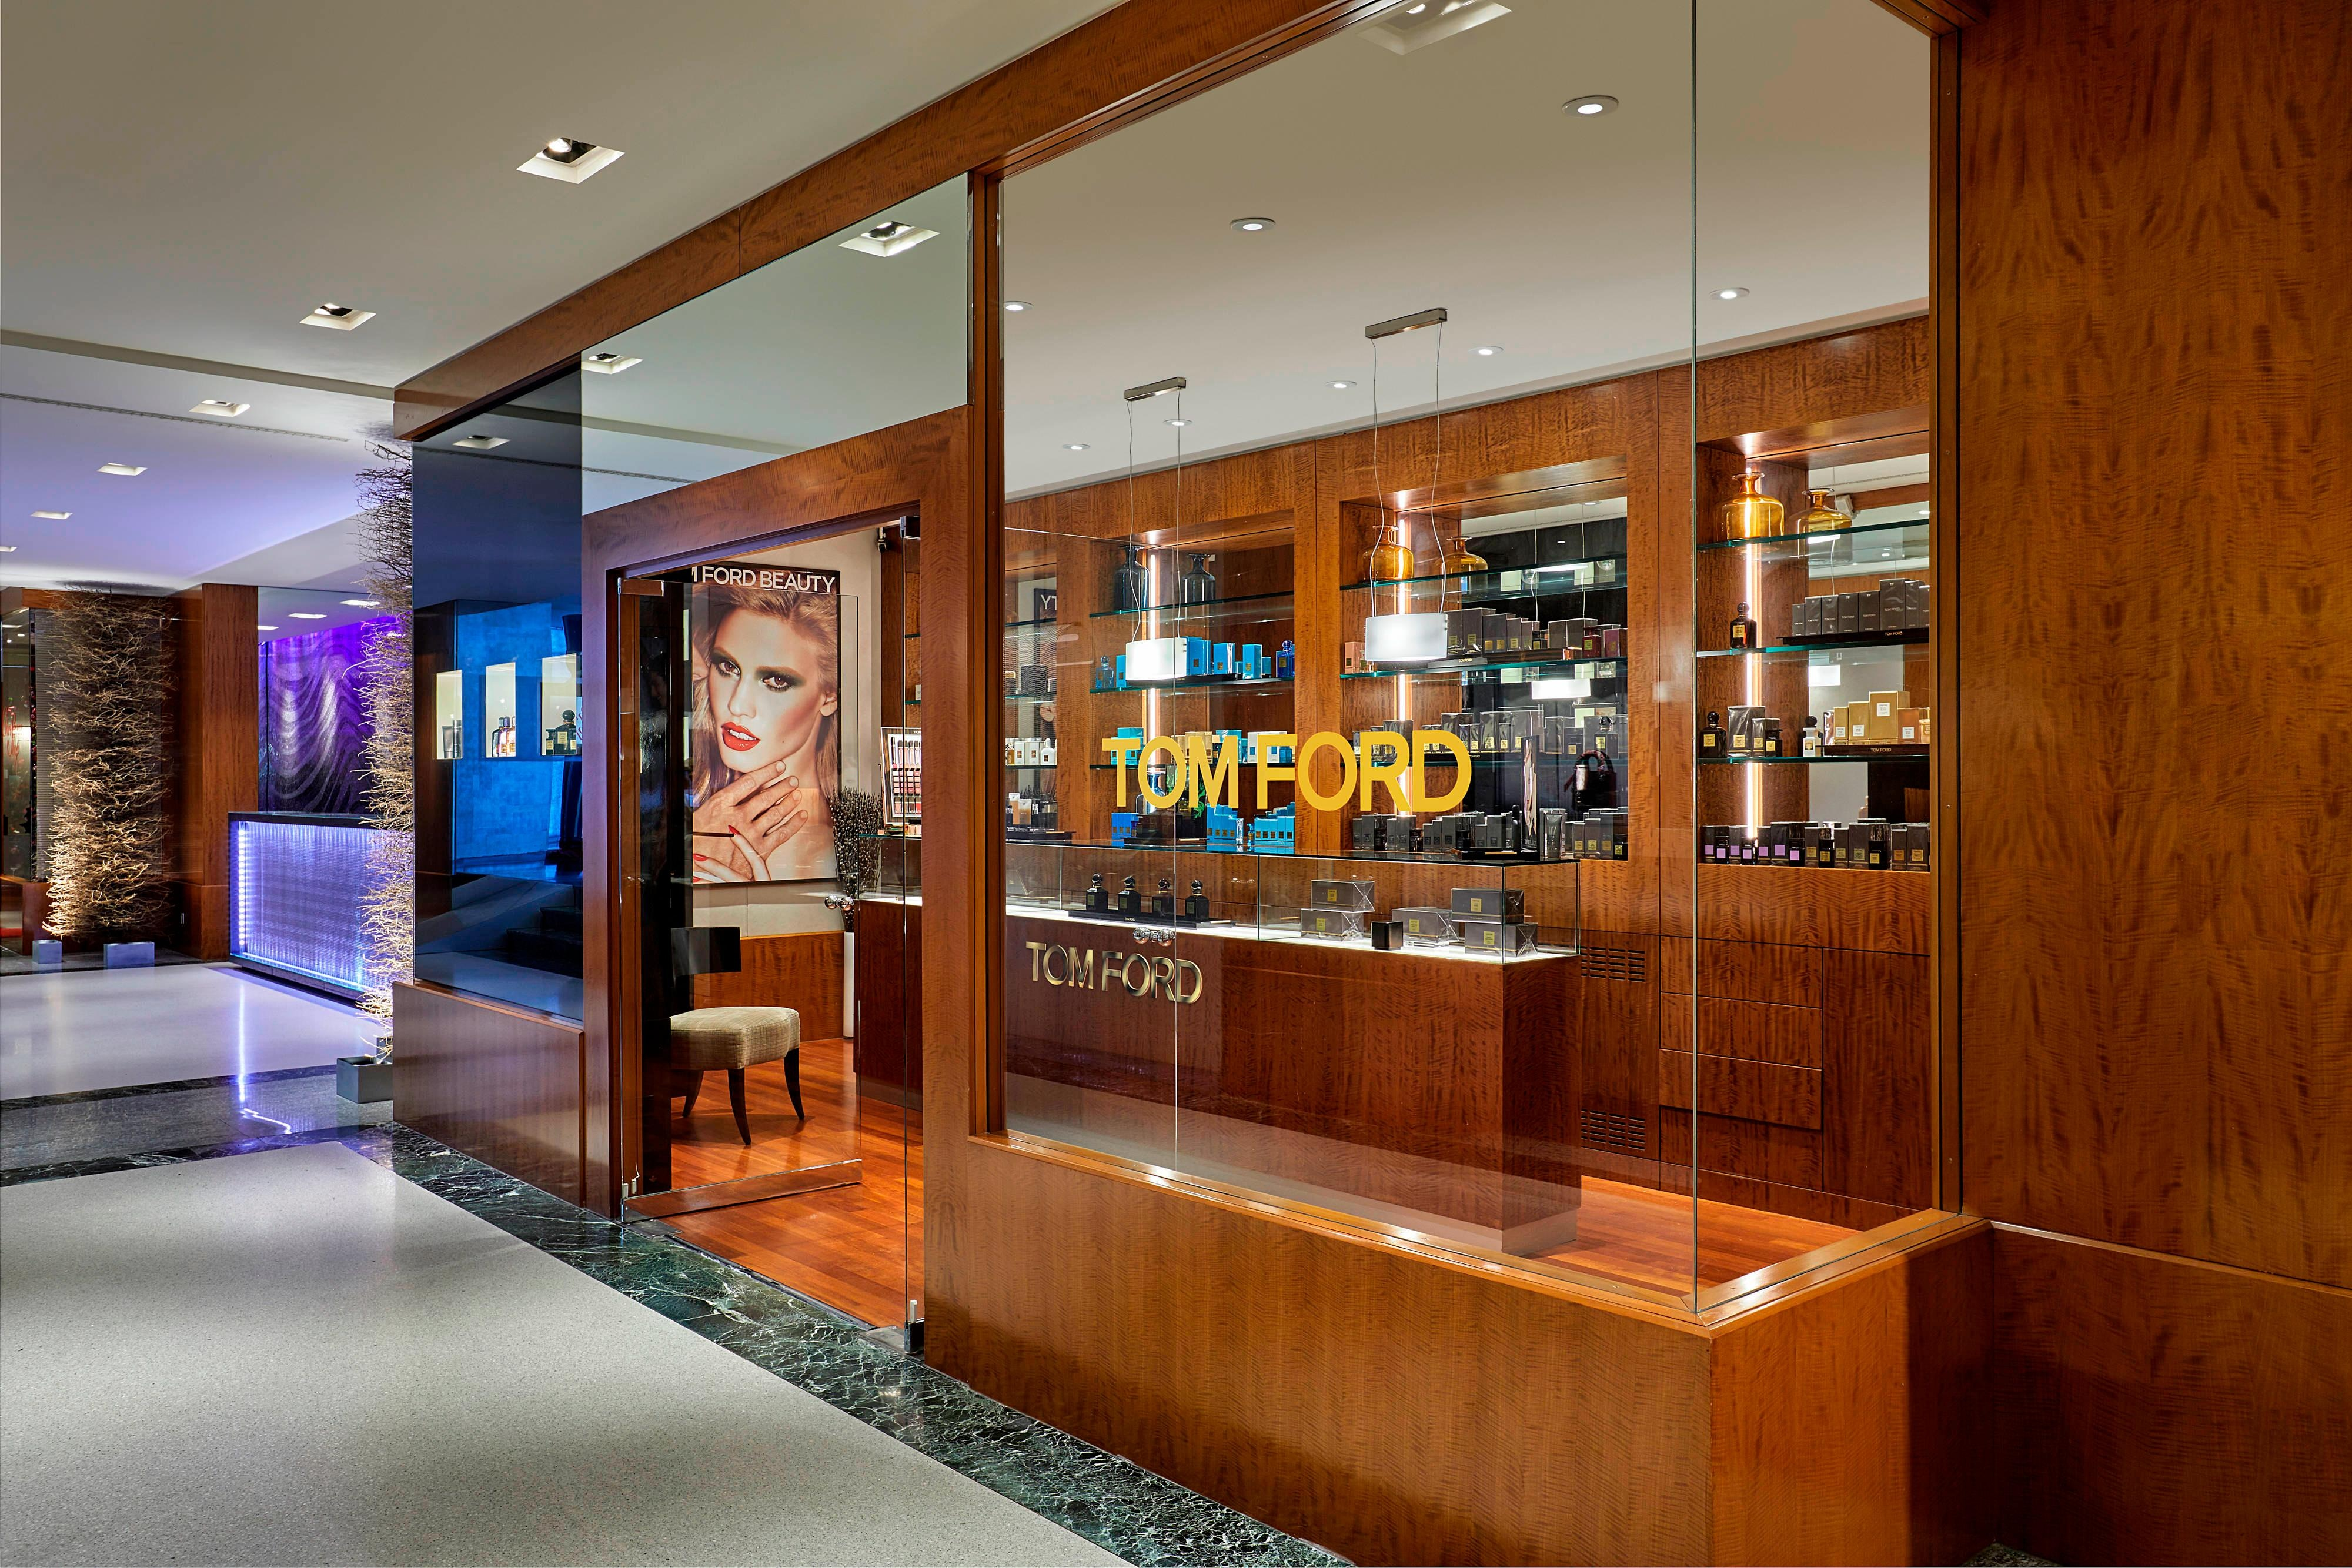 Tom Ford beauty shop